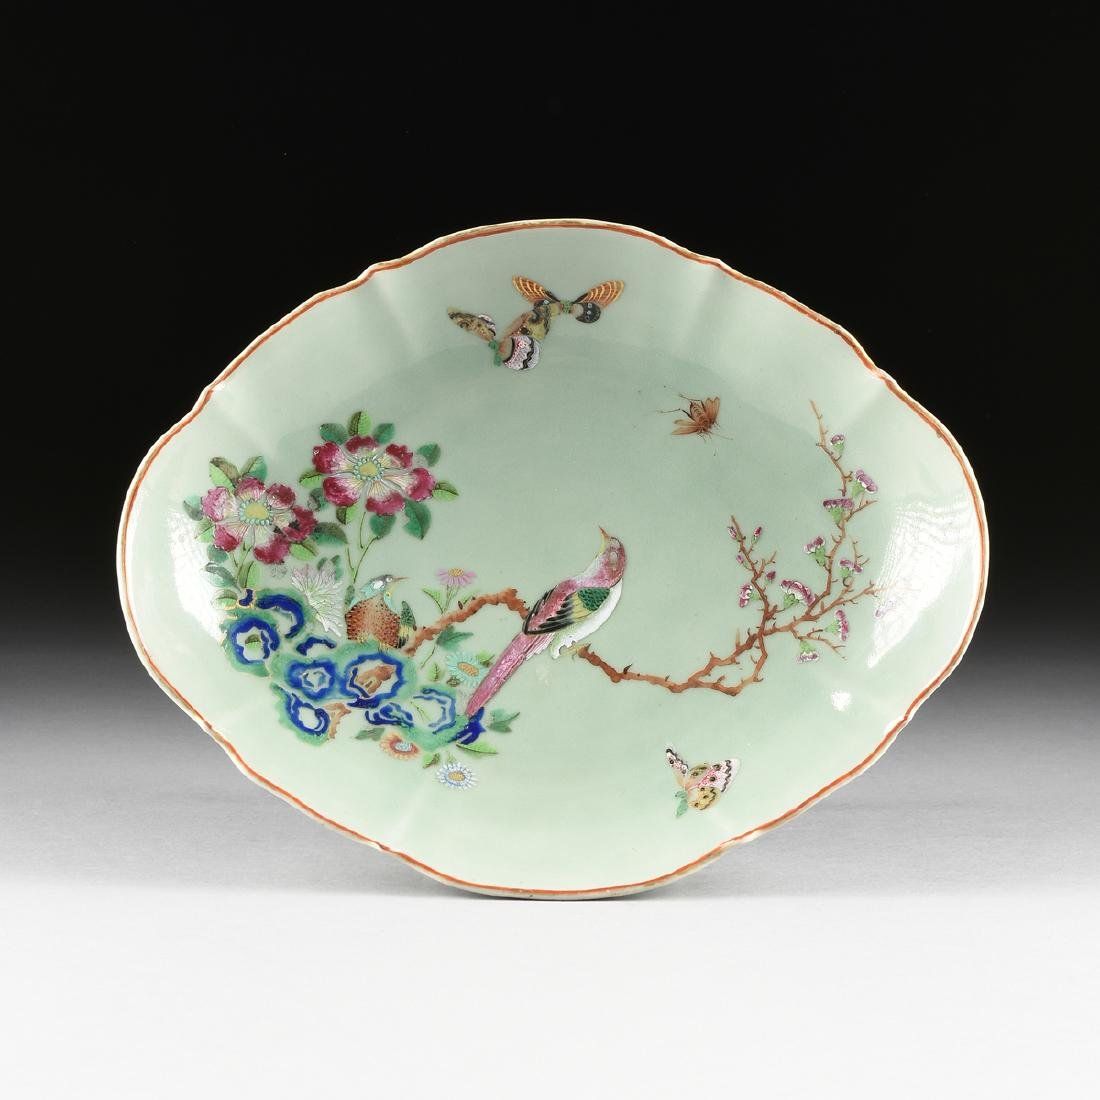 A CHINESE CELADON PORCELAIN OVAL DISH ON STAND WITH